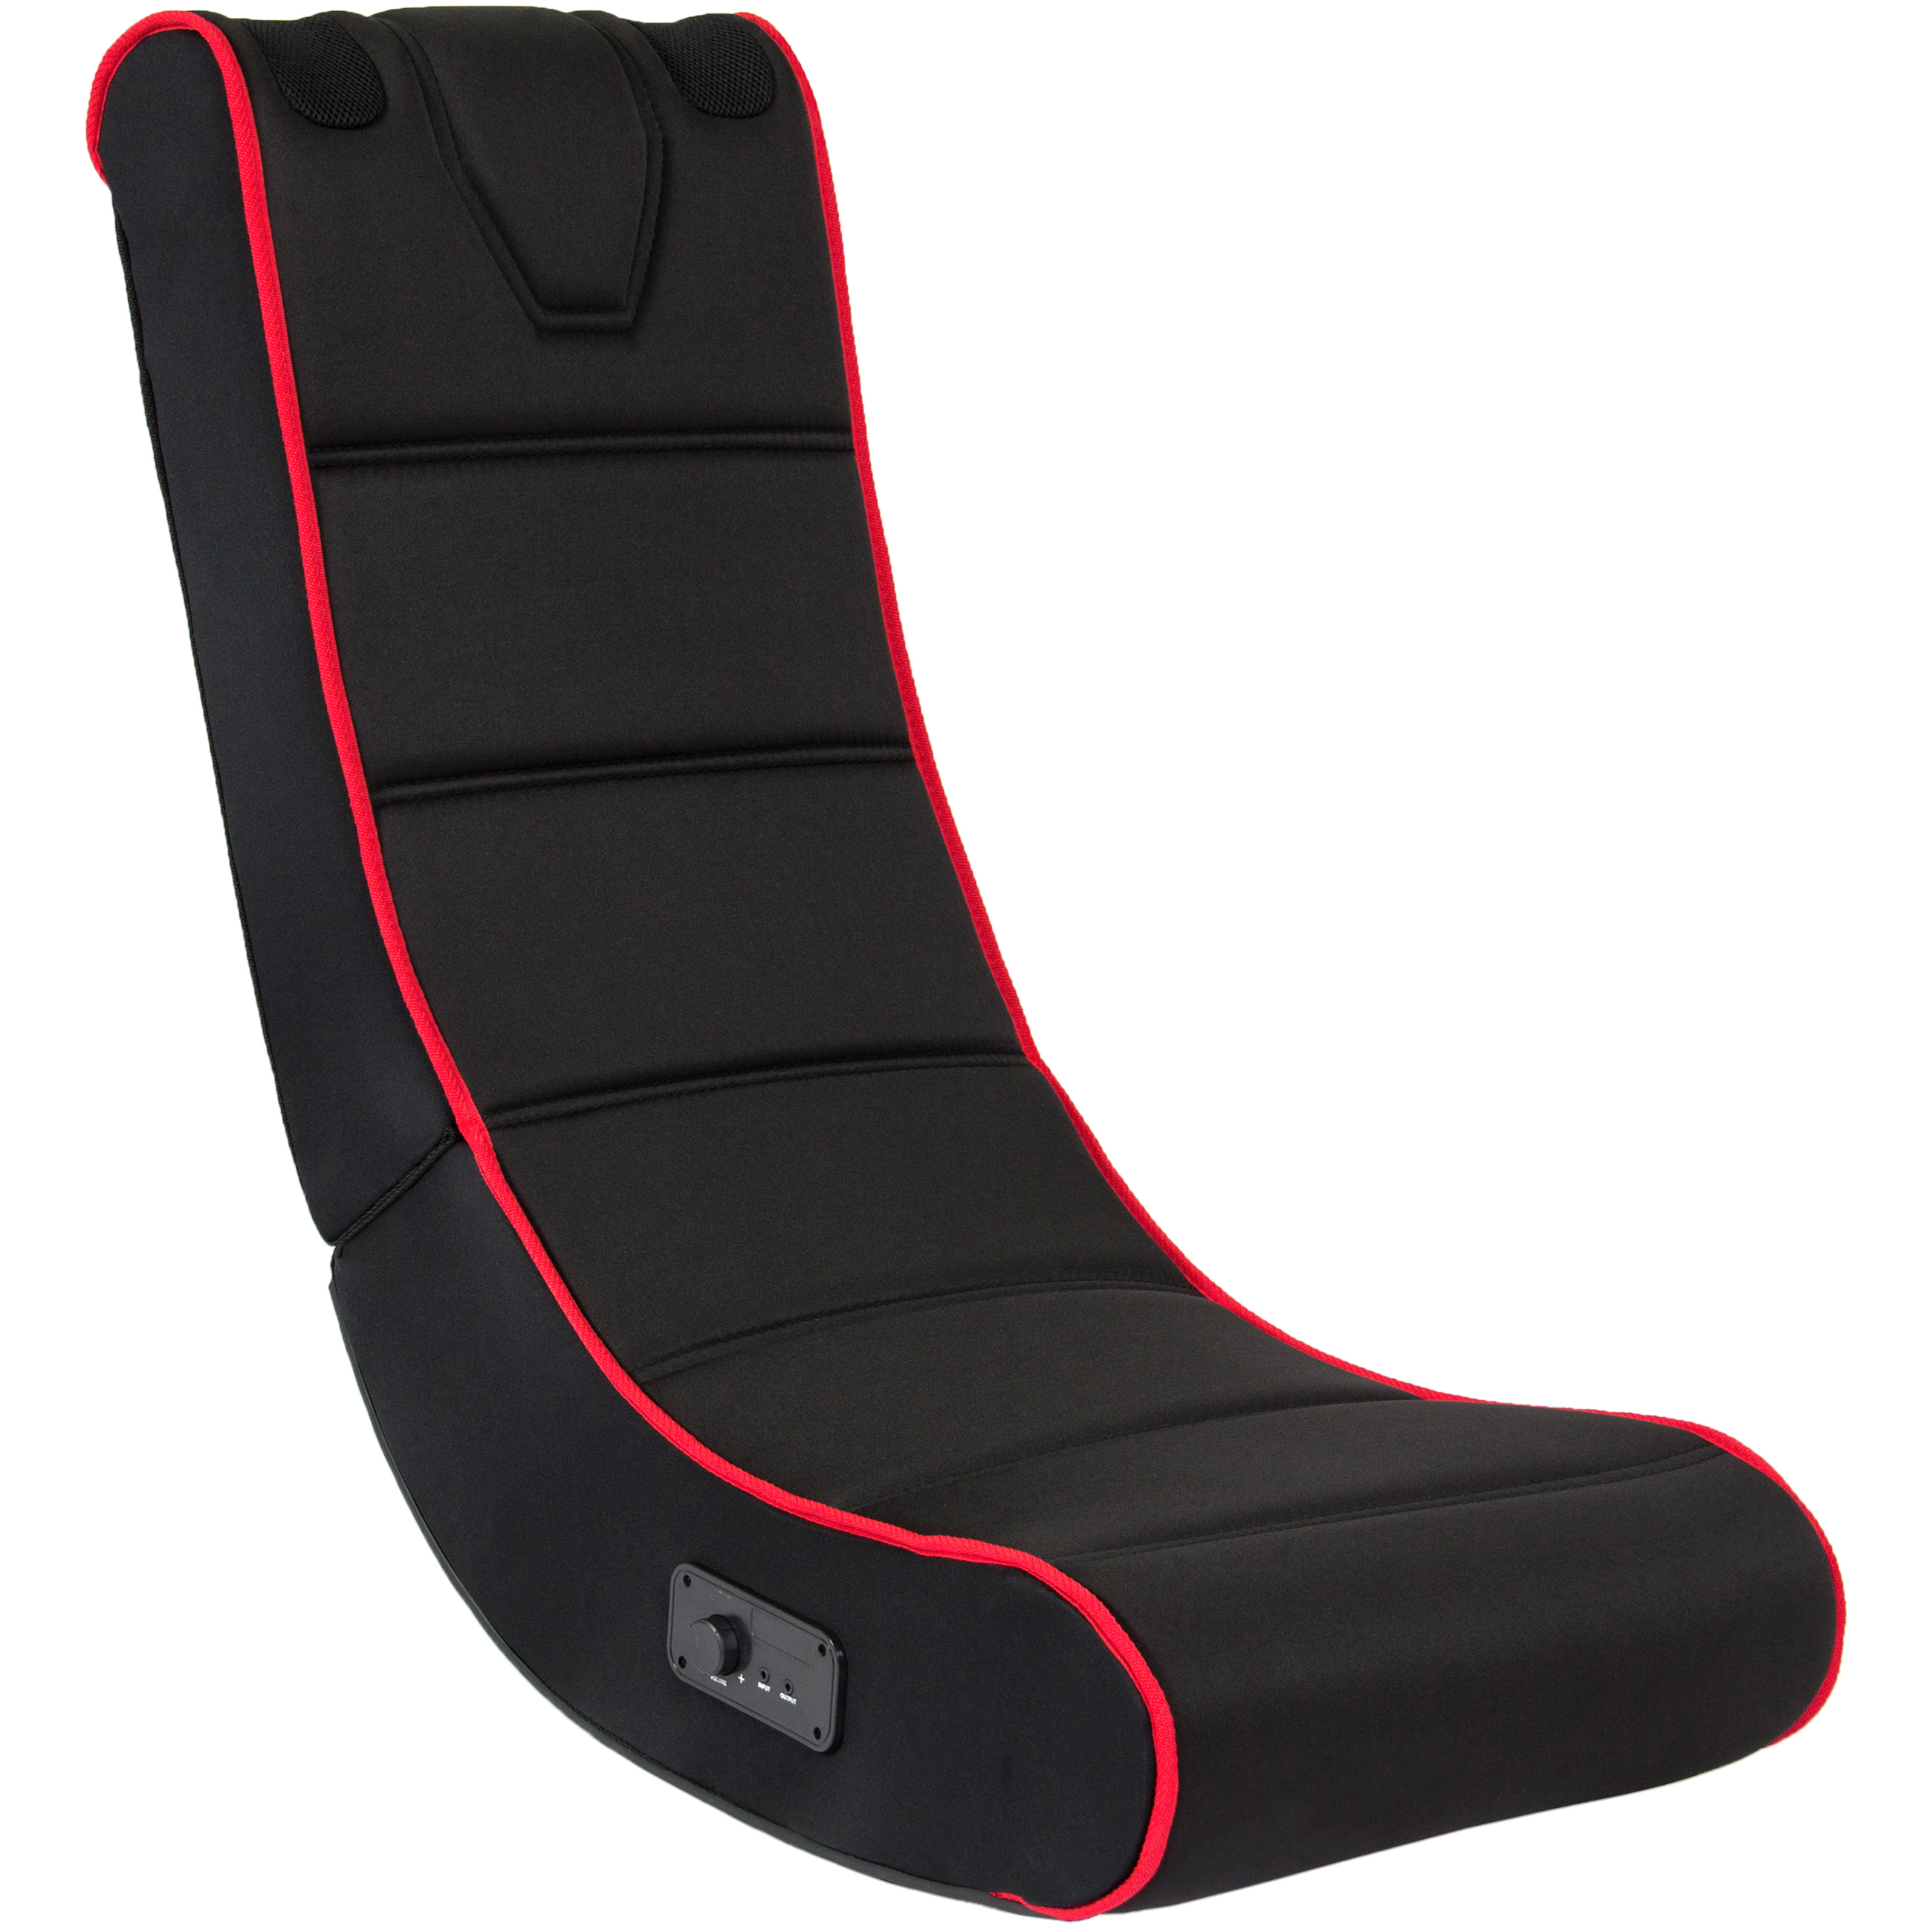 Best Choice Products Foldable Floor Gaming Chair w/ Audio Speakers System (Black/Red)